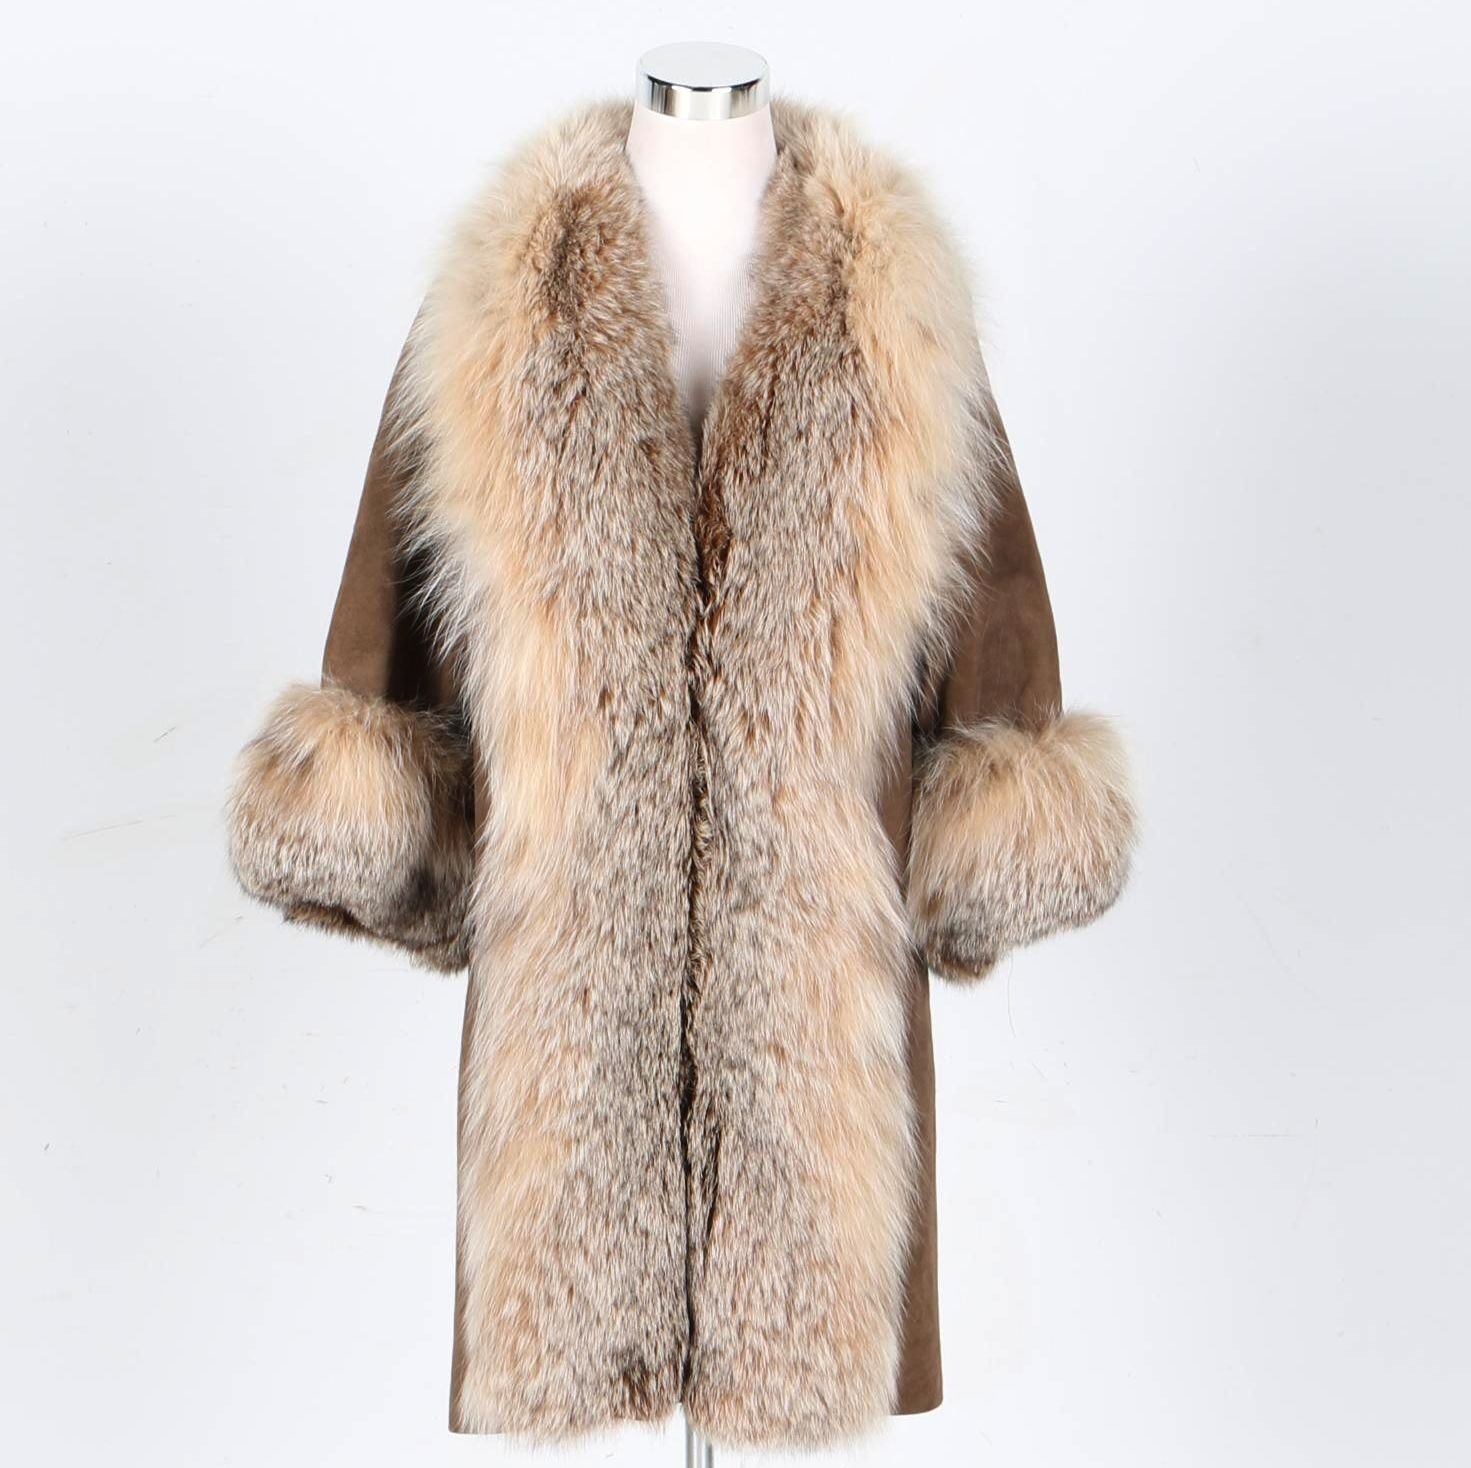 Full-Length Suede and Fox Fur Coat